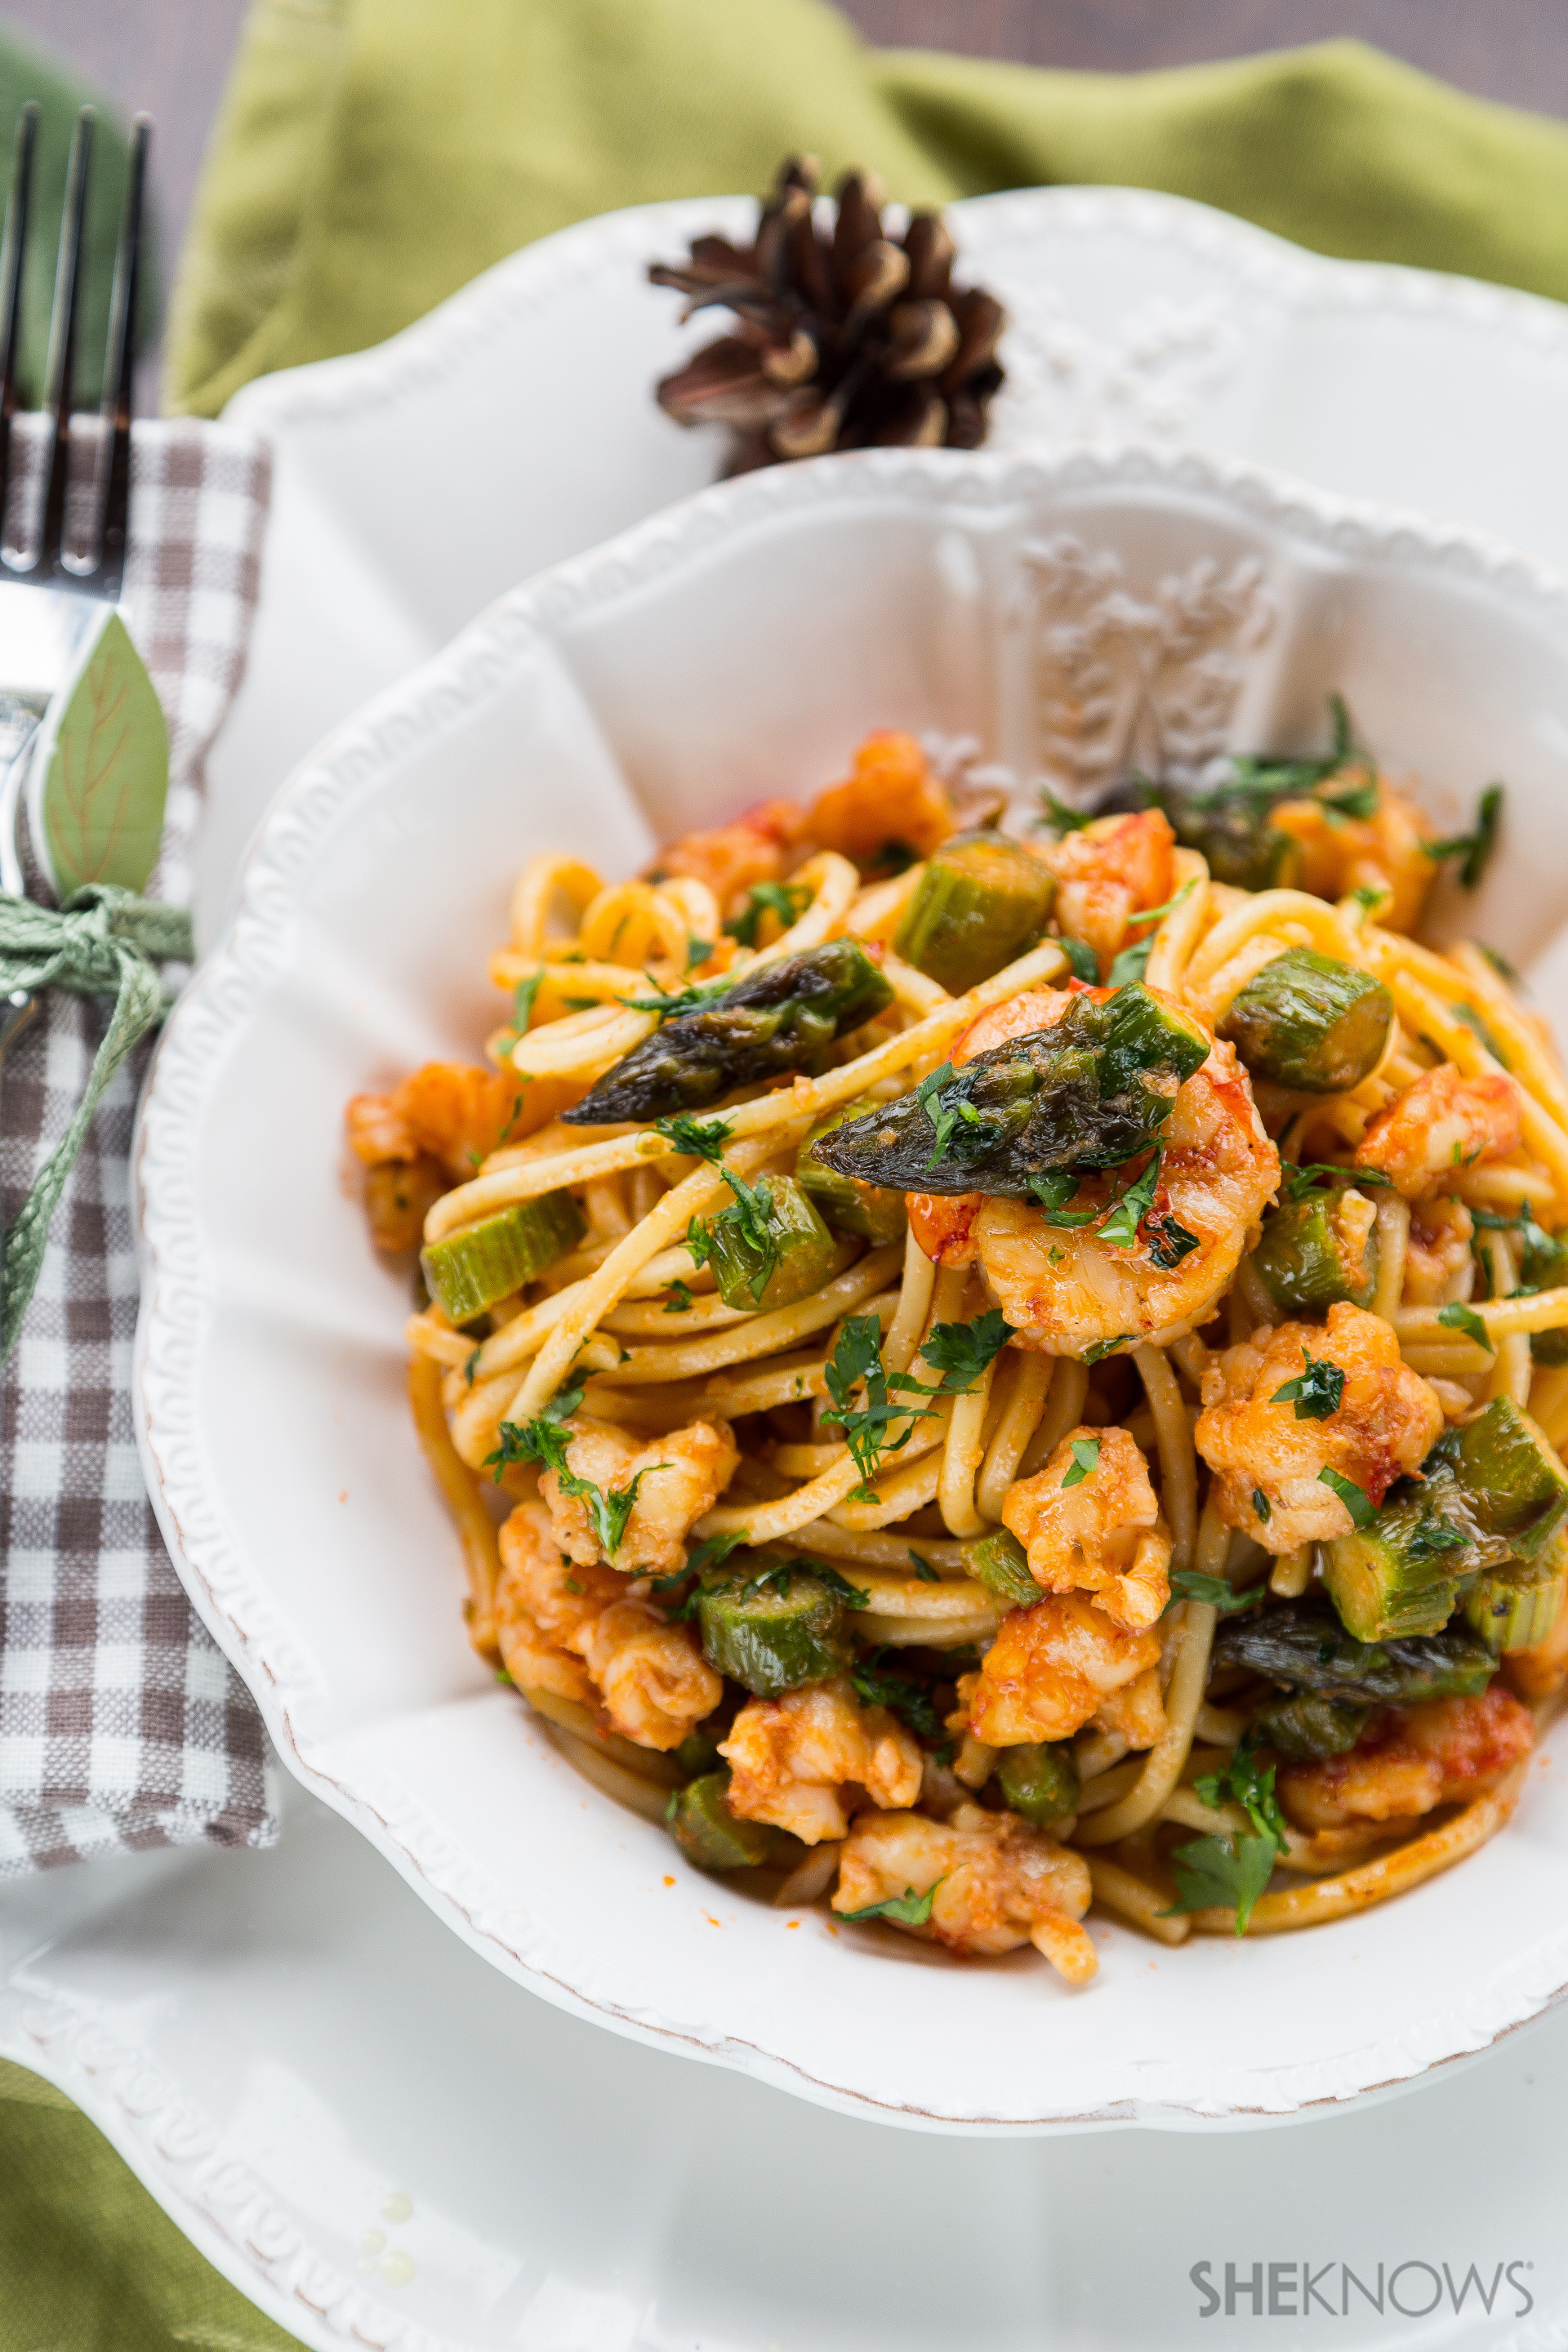 Spaghetti with harissa-spiced shrimp and asparagus recipe